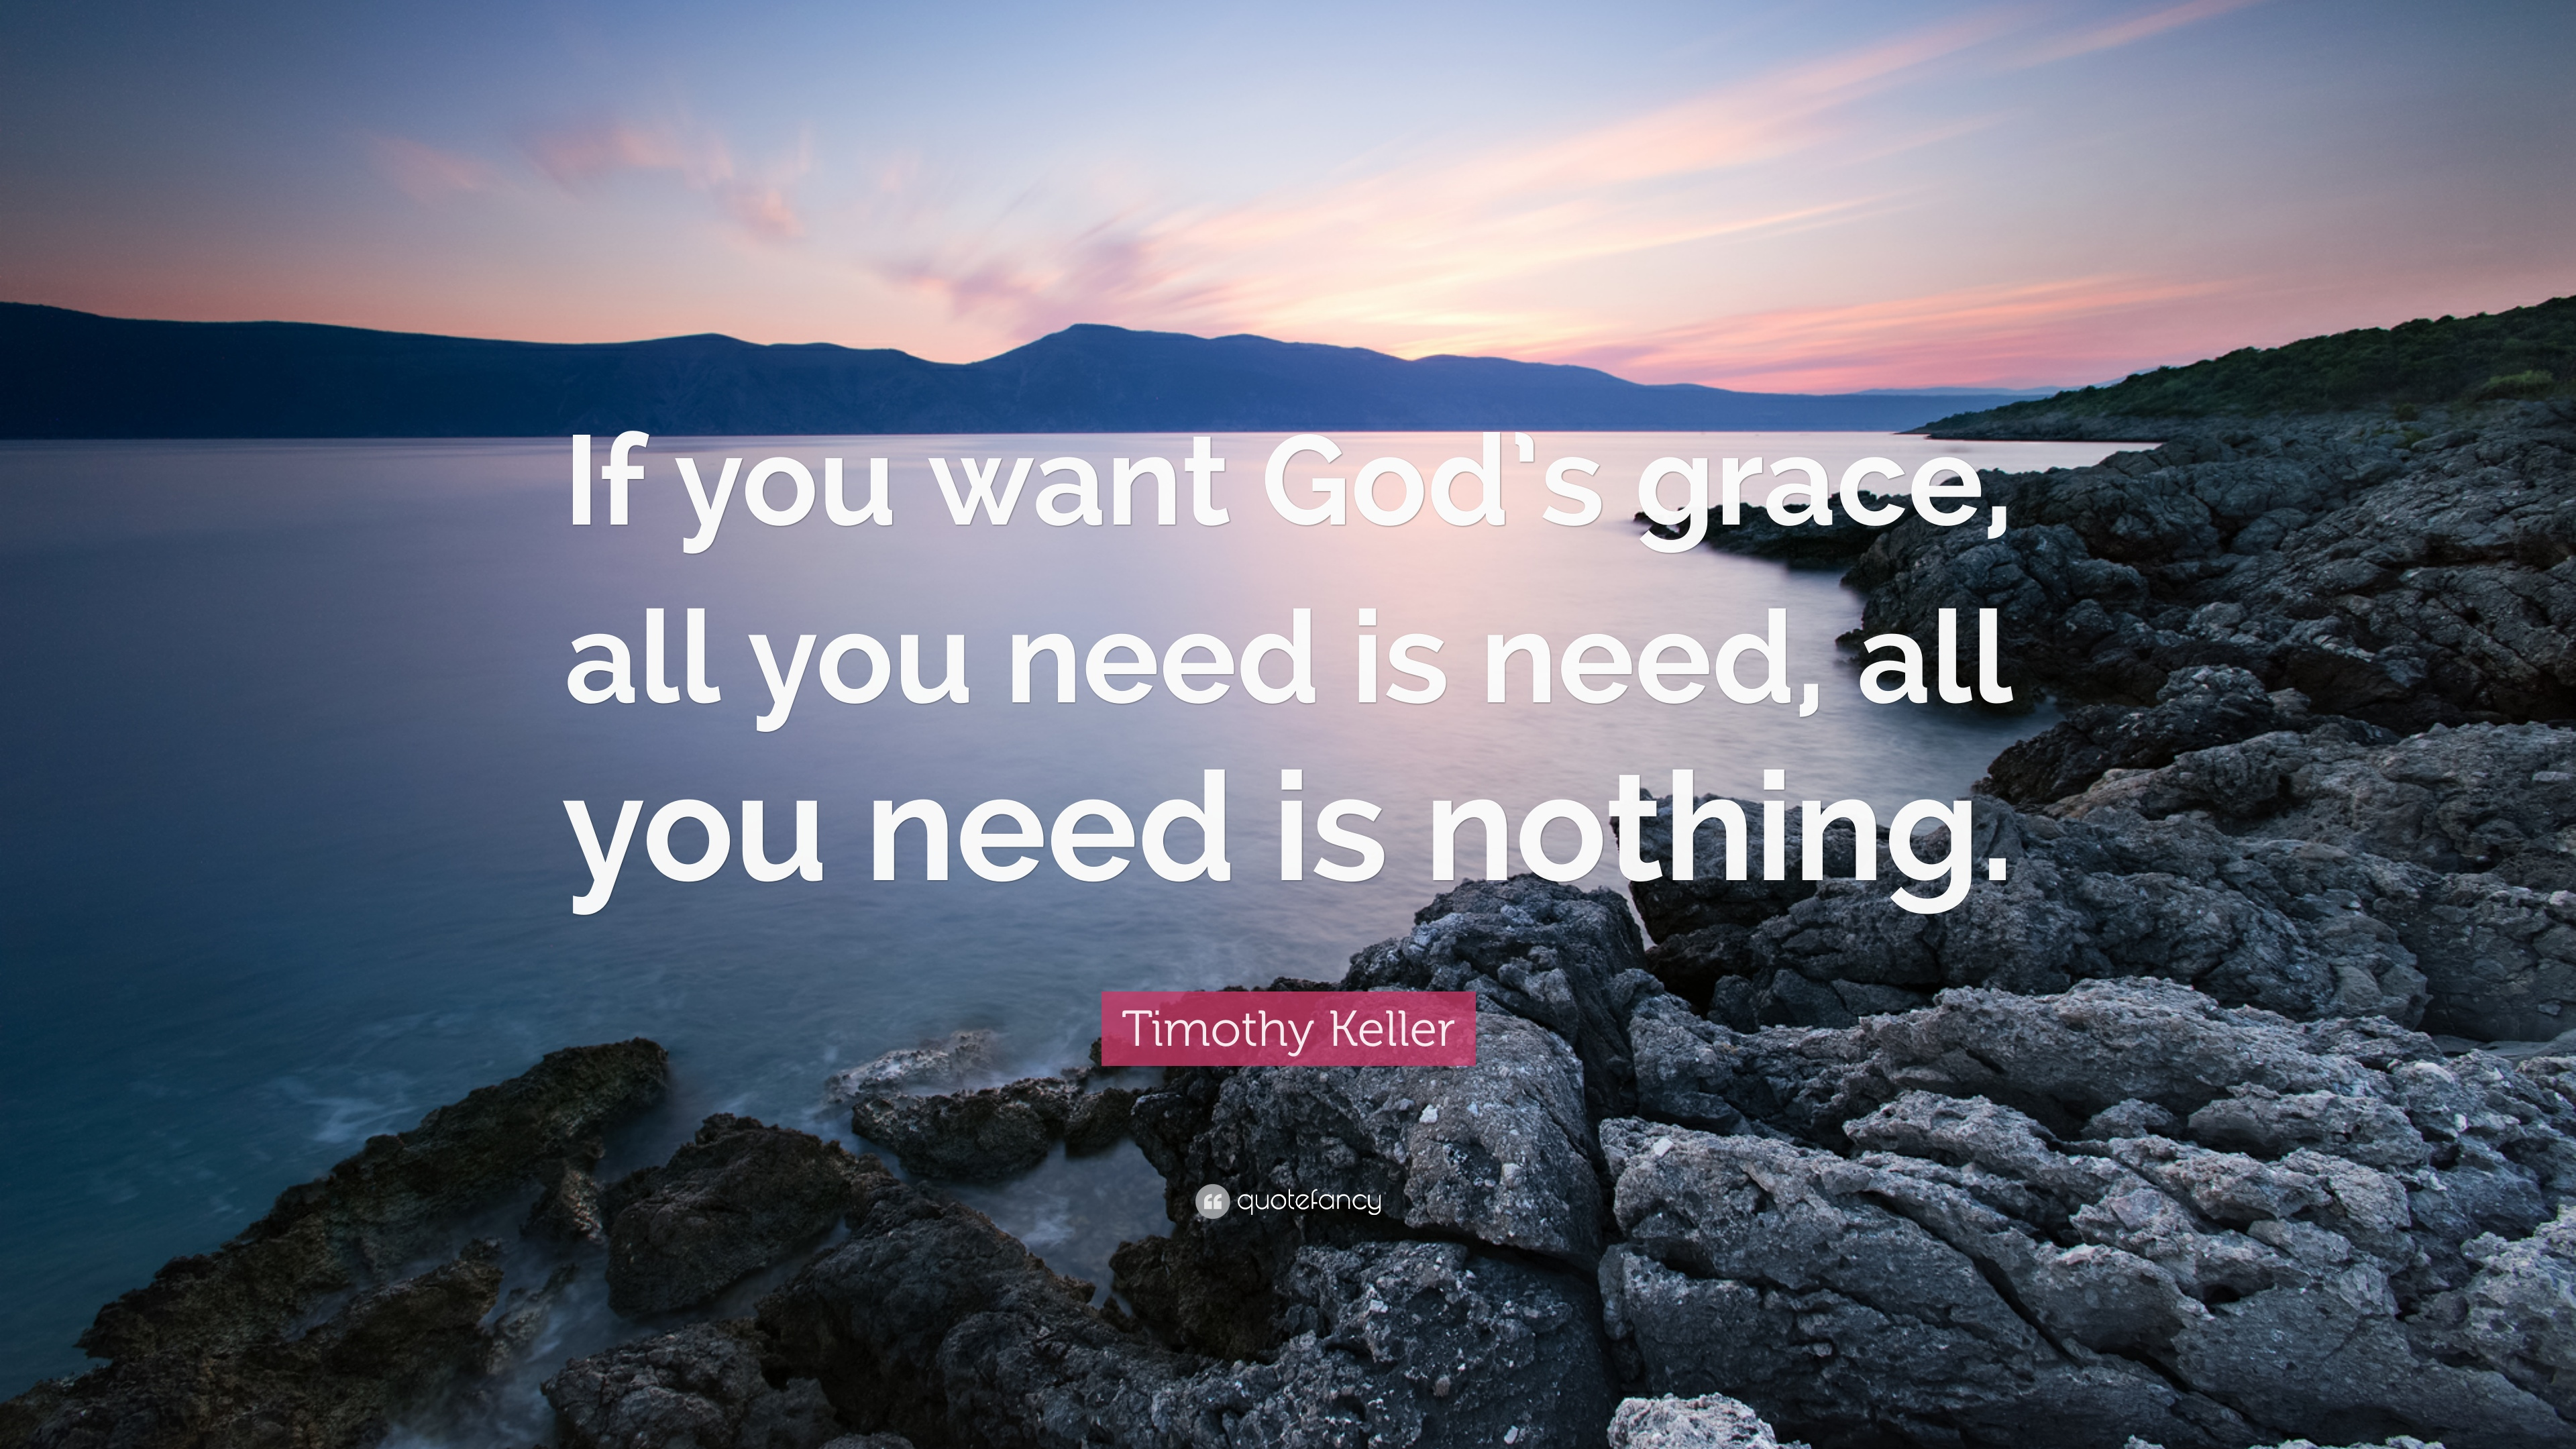 Timothy Keller Quote If You Want Gods Grace All You Need Is Need